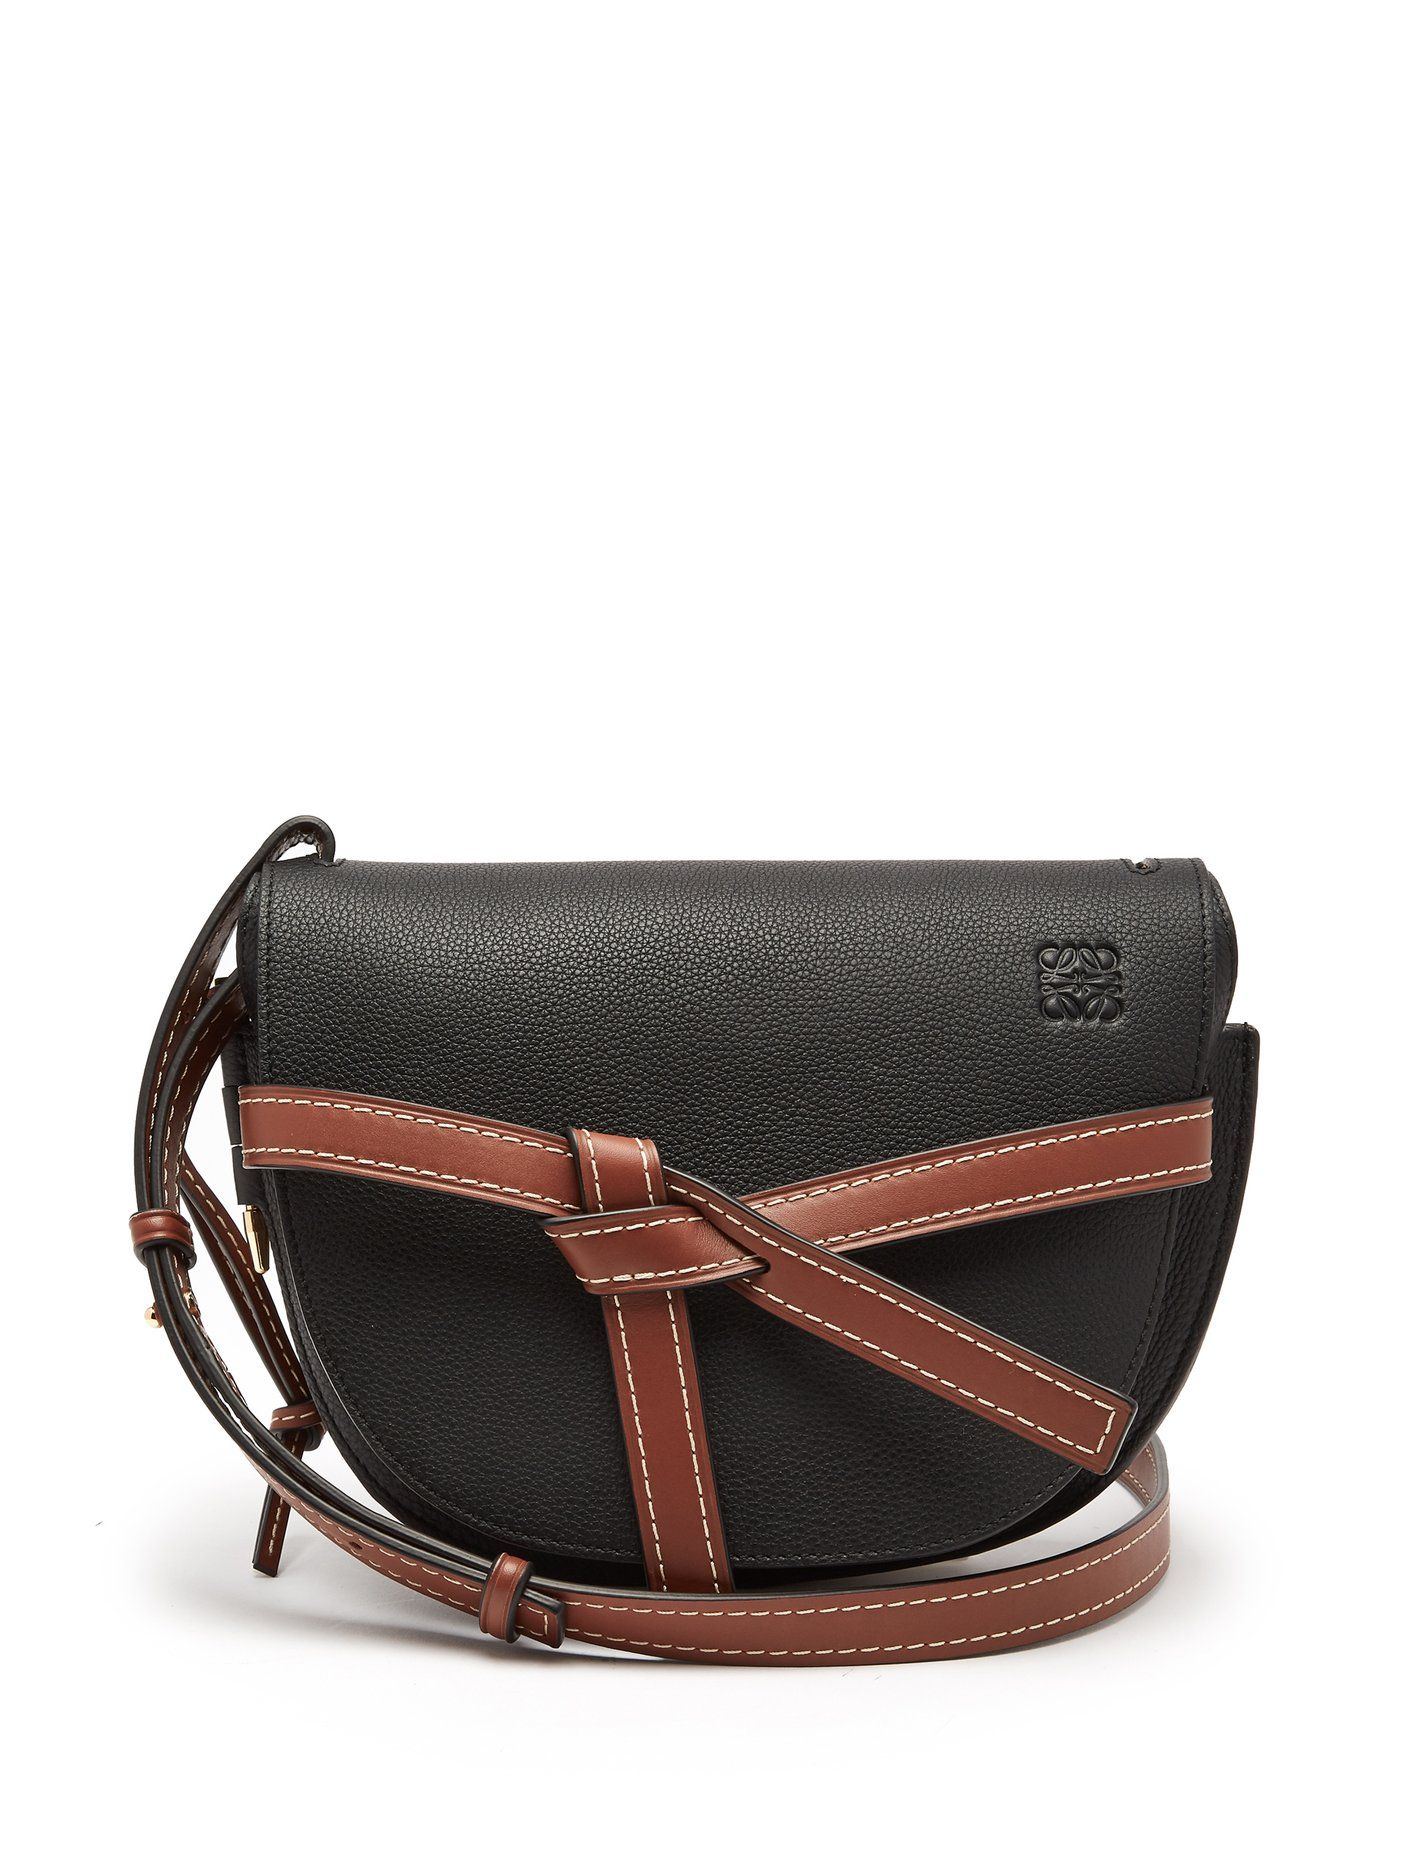 6807a89411c7 Gate small grained-leather cross-body bag | Loewe | MATCHESFASHION ...